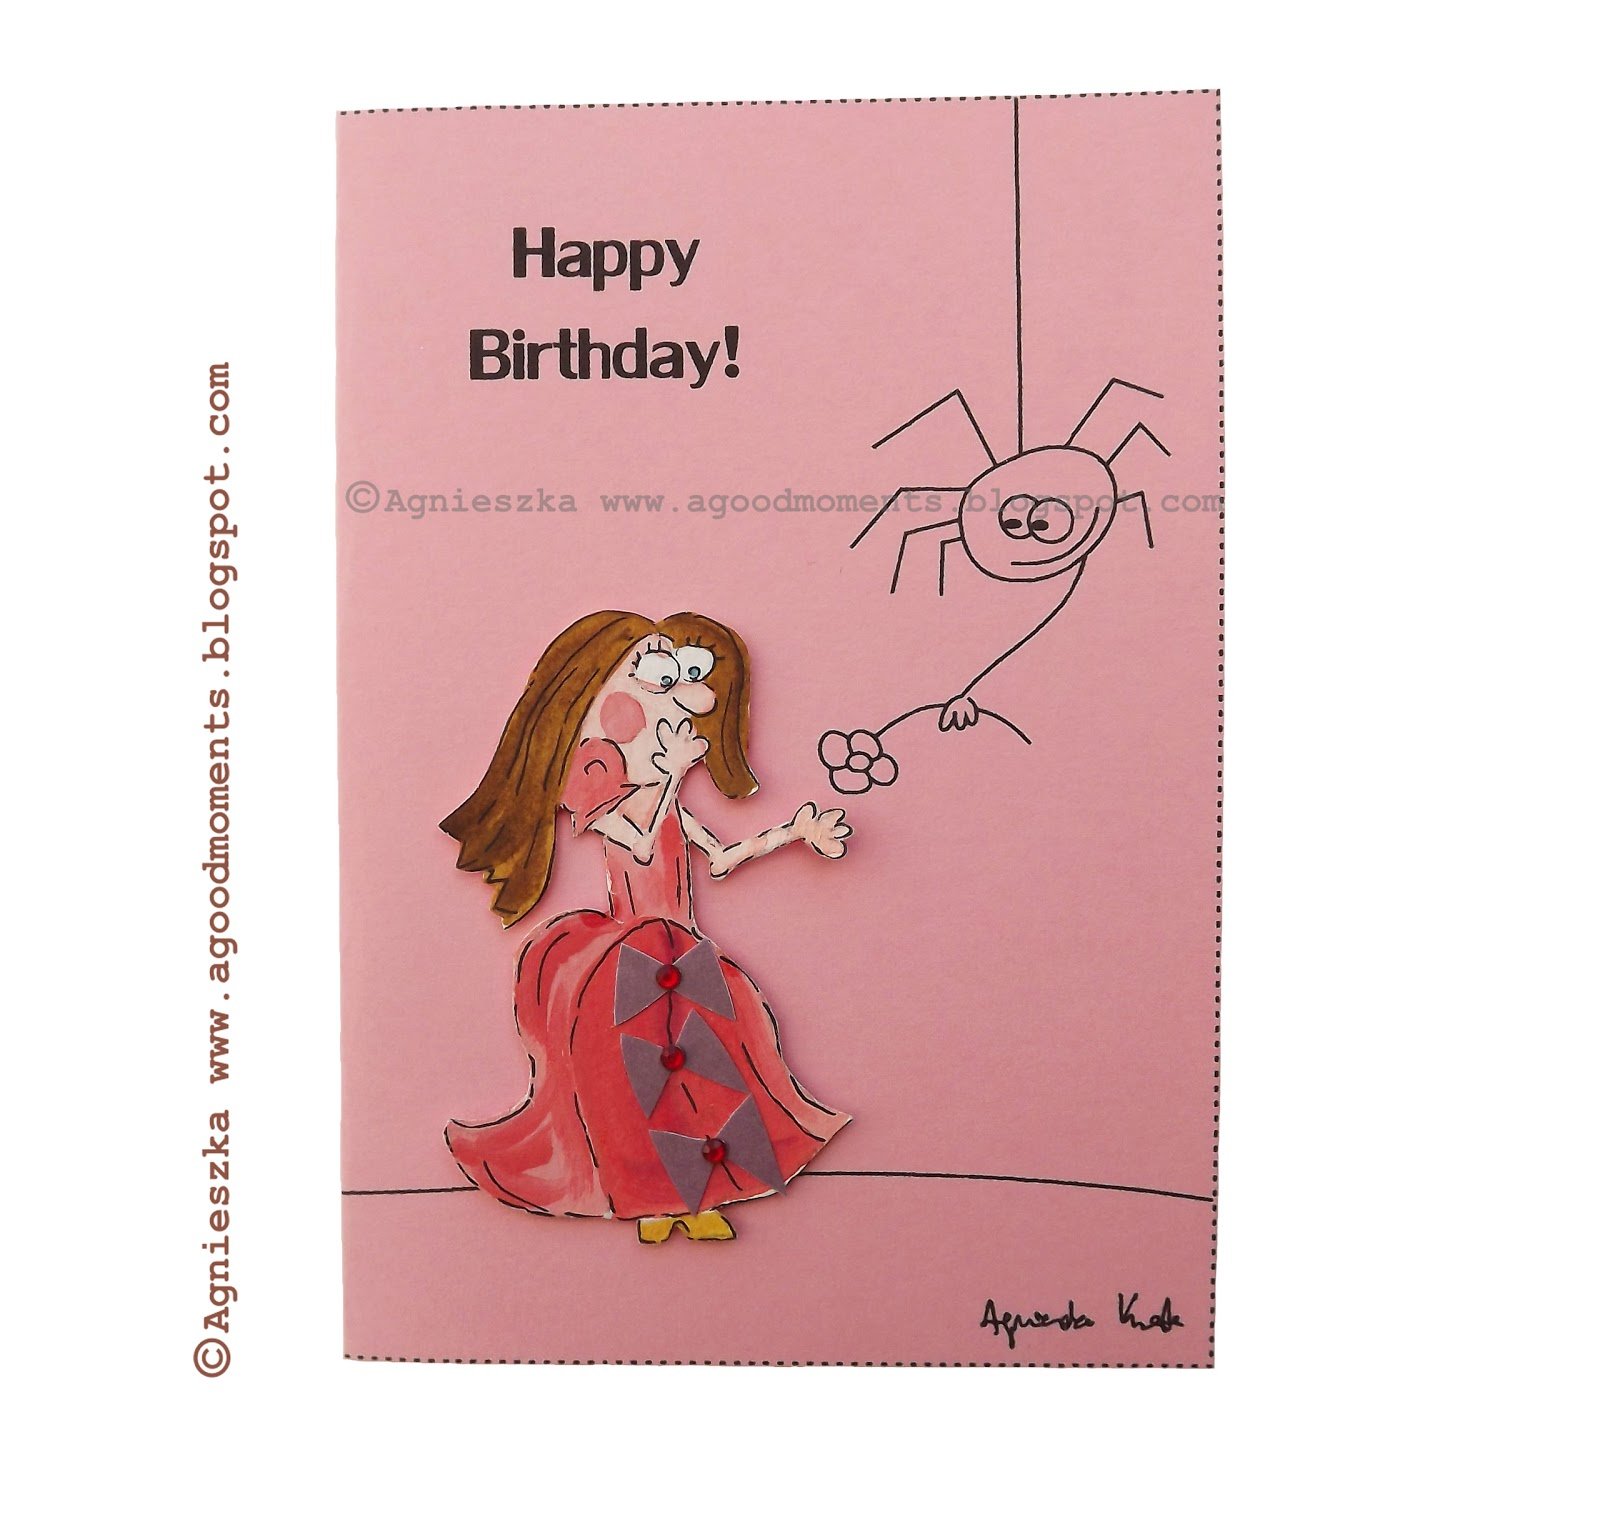 Good Moments: Funny Birthday Card / Śmieszna Kartka Urodzinowa